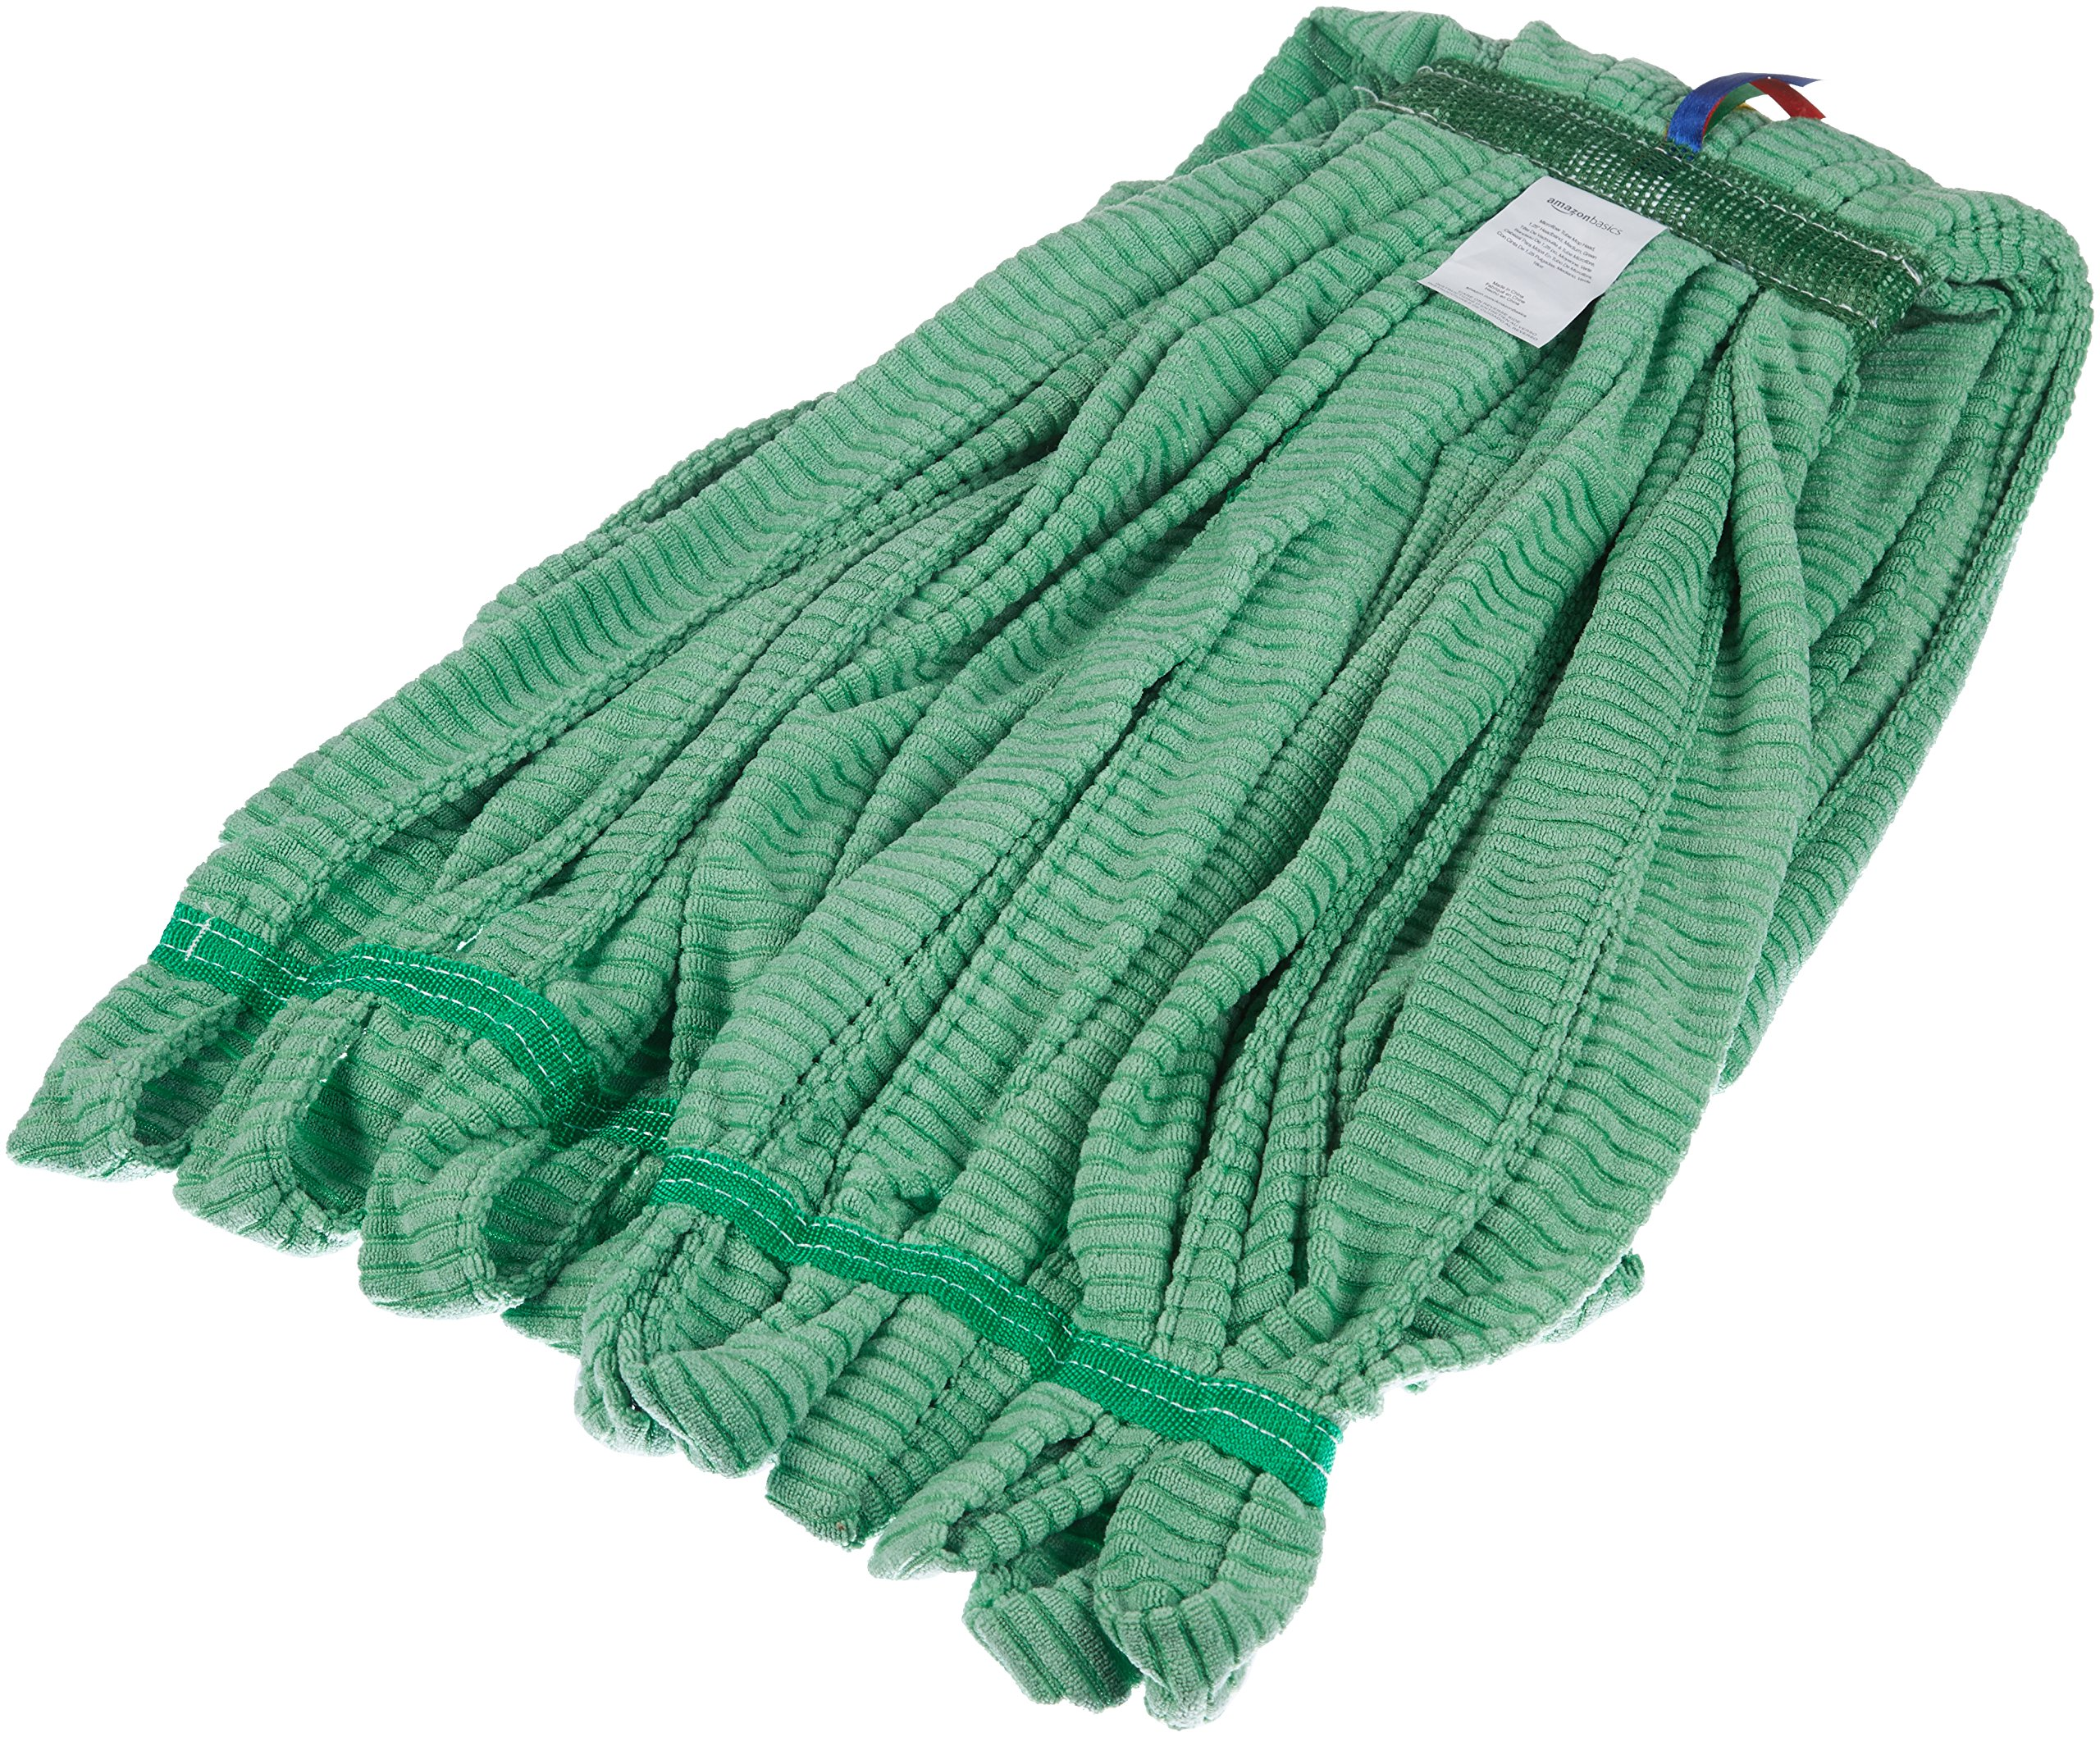 AmazonBasics Microfiber Tube Mop Head, 1.25-Inch Headband, Medium, Green - 6-Pack